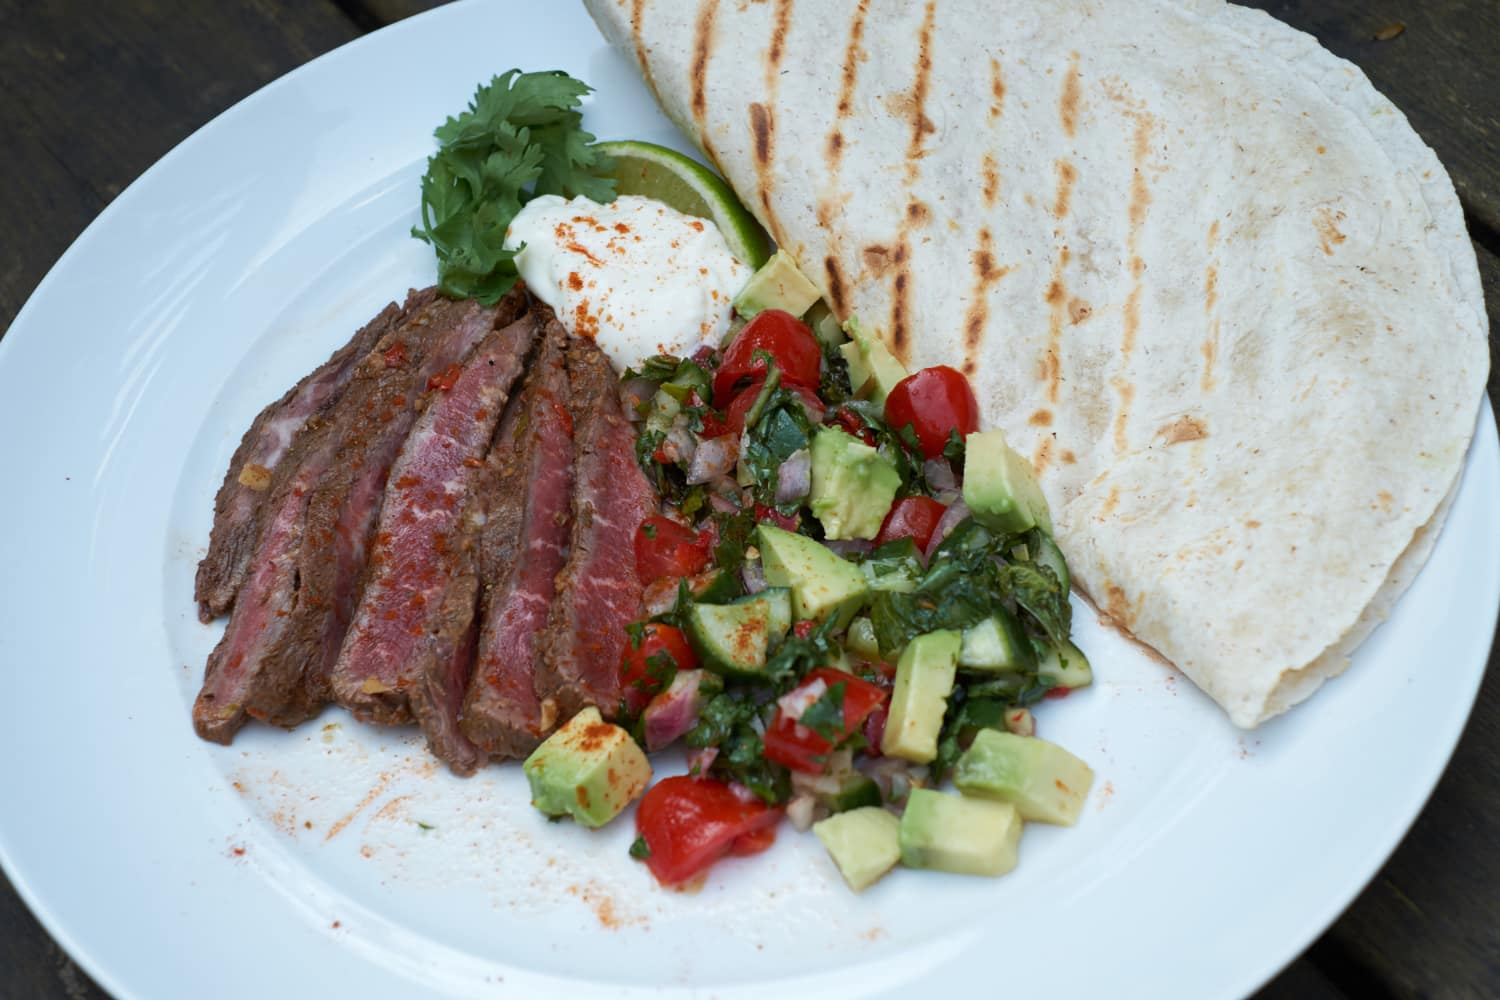 Spicy Flat Iron Steak servered with salad and bread